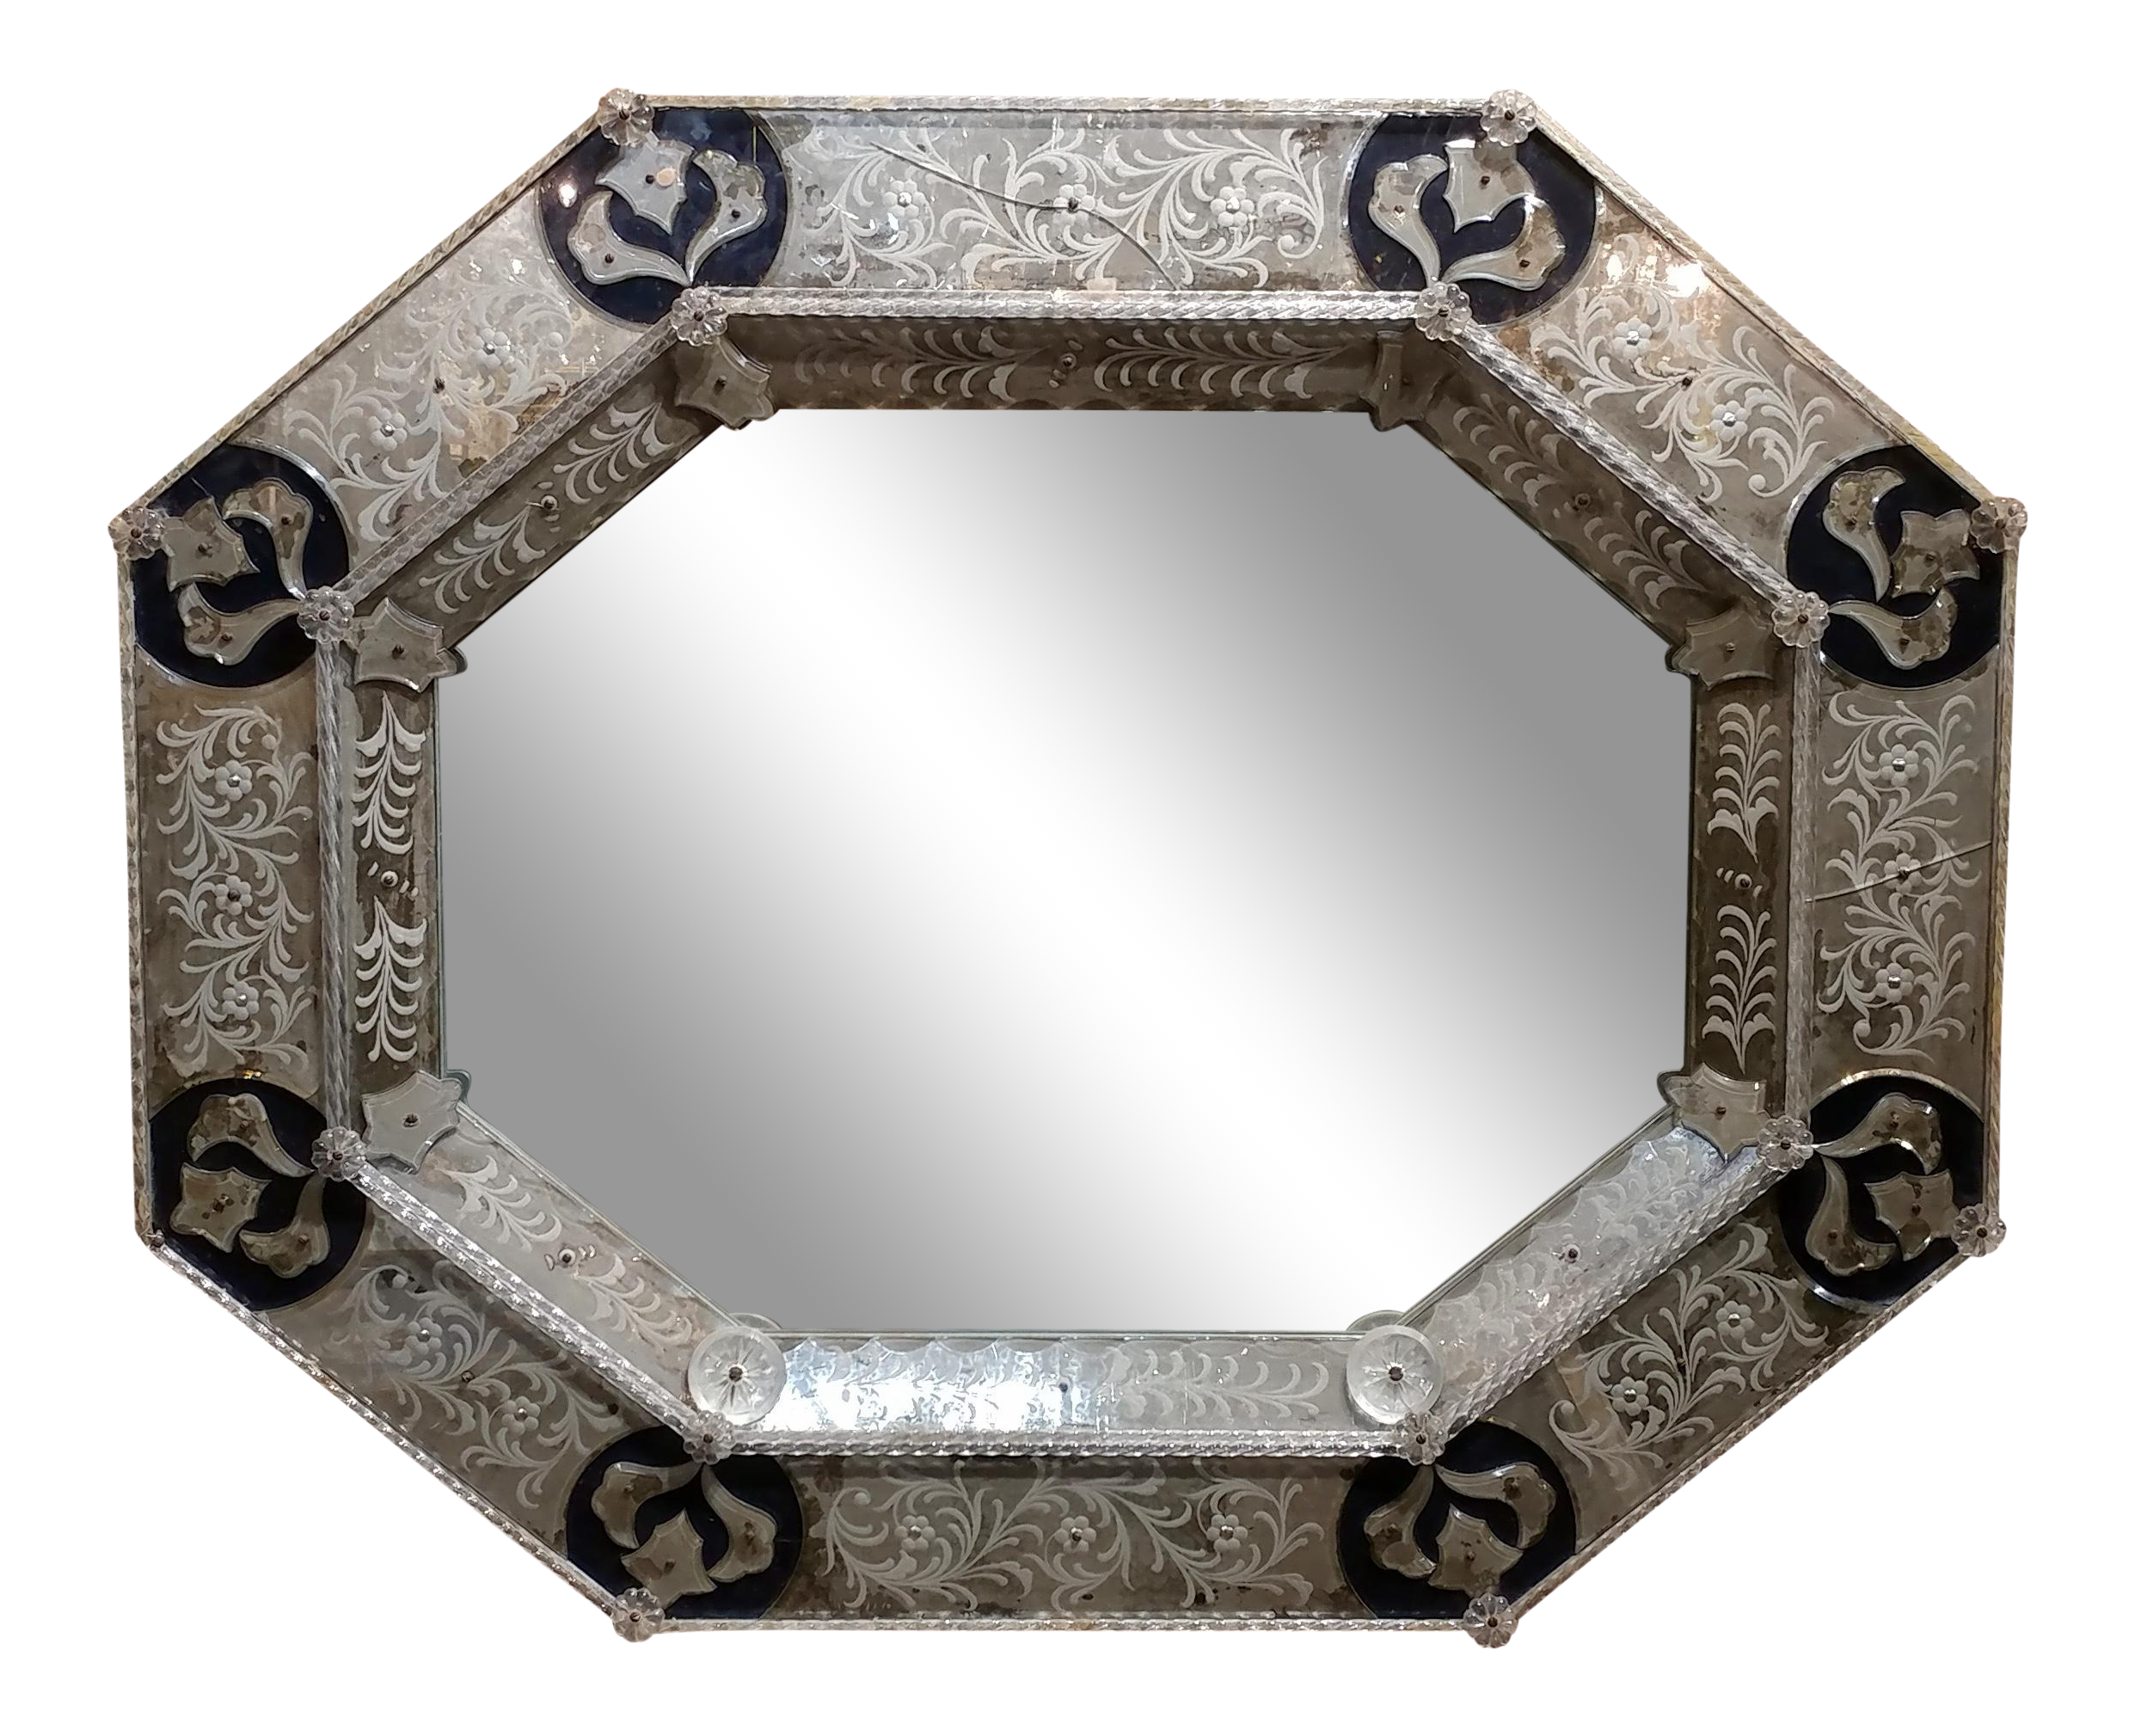 19th Century Antique Venetian Octagonal Etched Wall Mirror